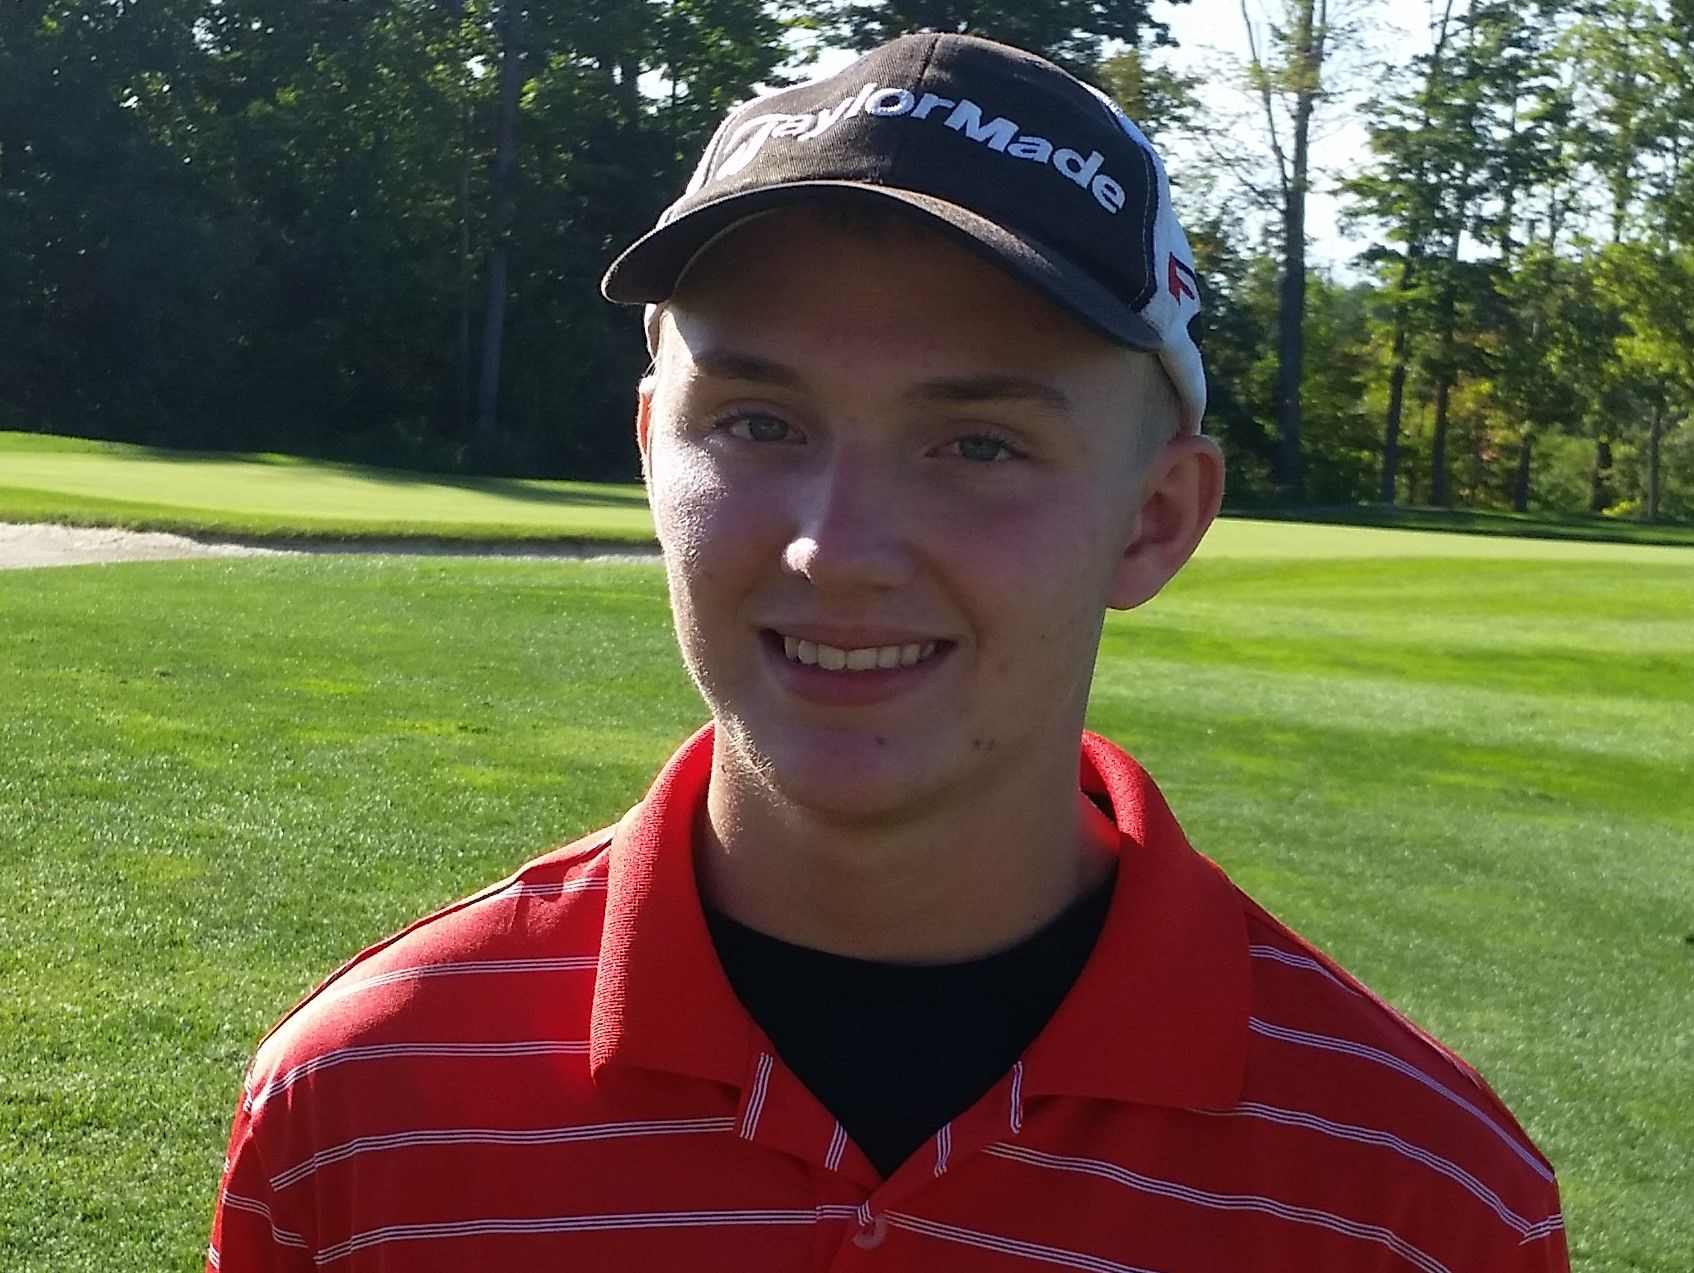 Geneva High School senior golfer Eric Doerge at the Division I sectional tournament at Quail Hollow on October 5